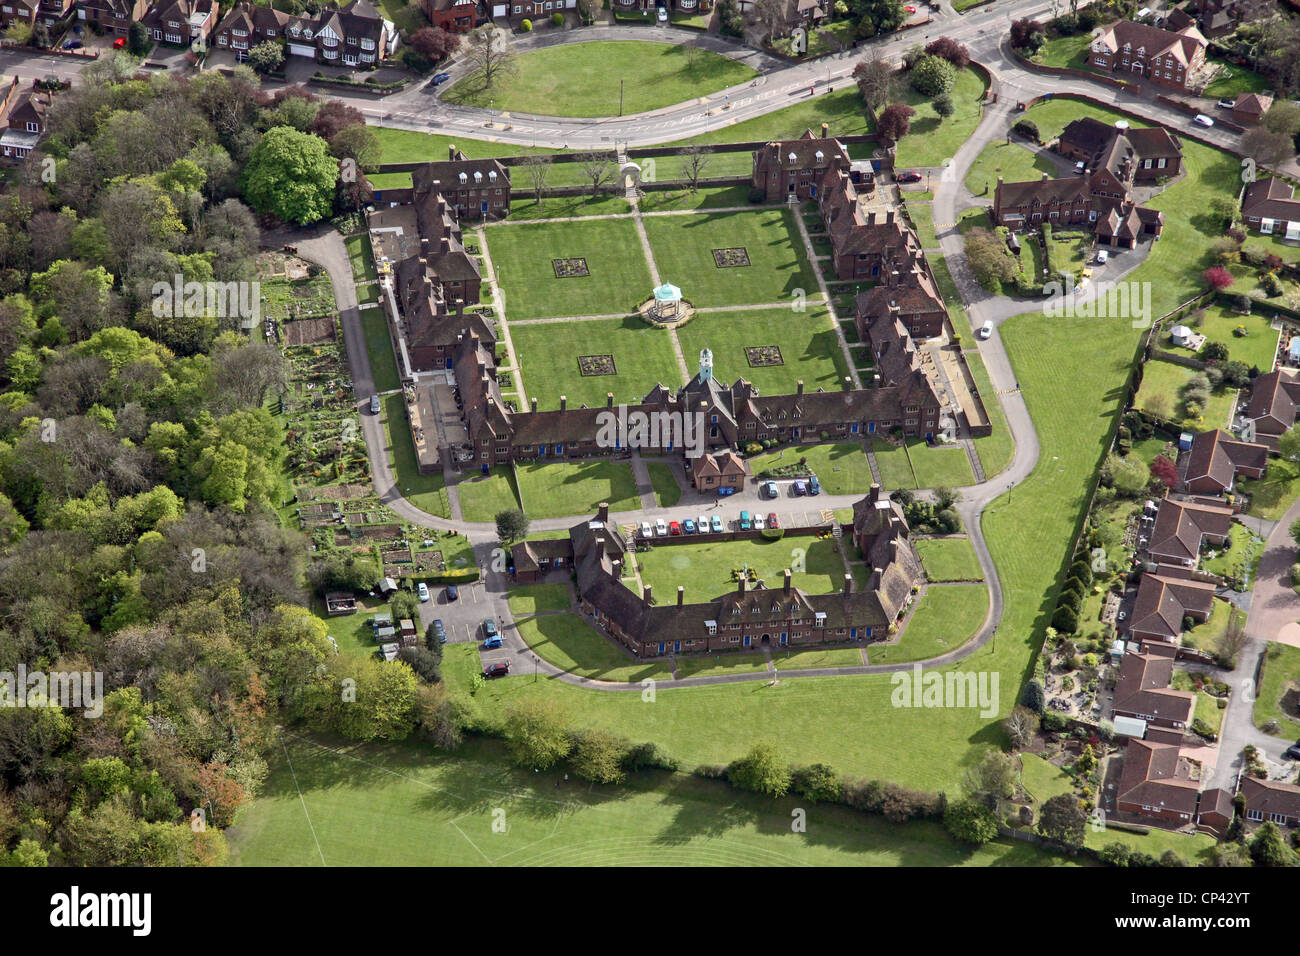 Aerial view of The Richard Watts and The City of Rochester Almshouses Charities, Rochester, Kent - Stock Image